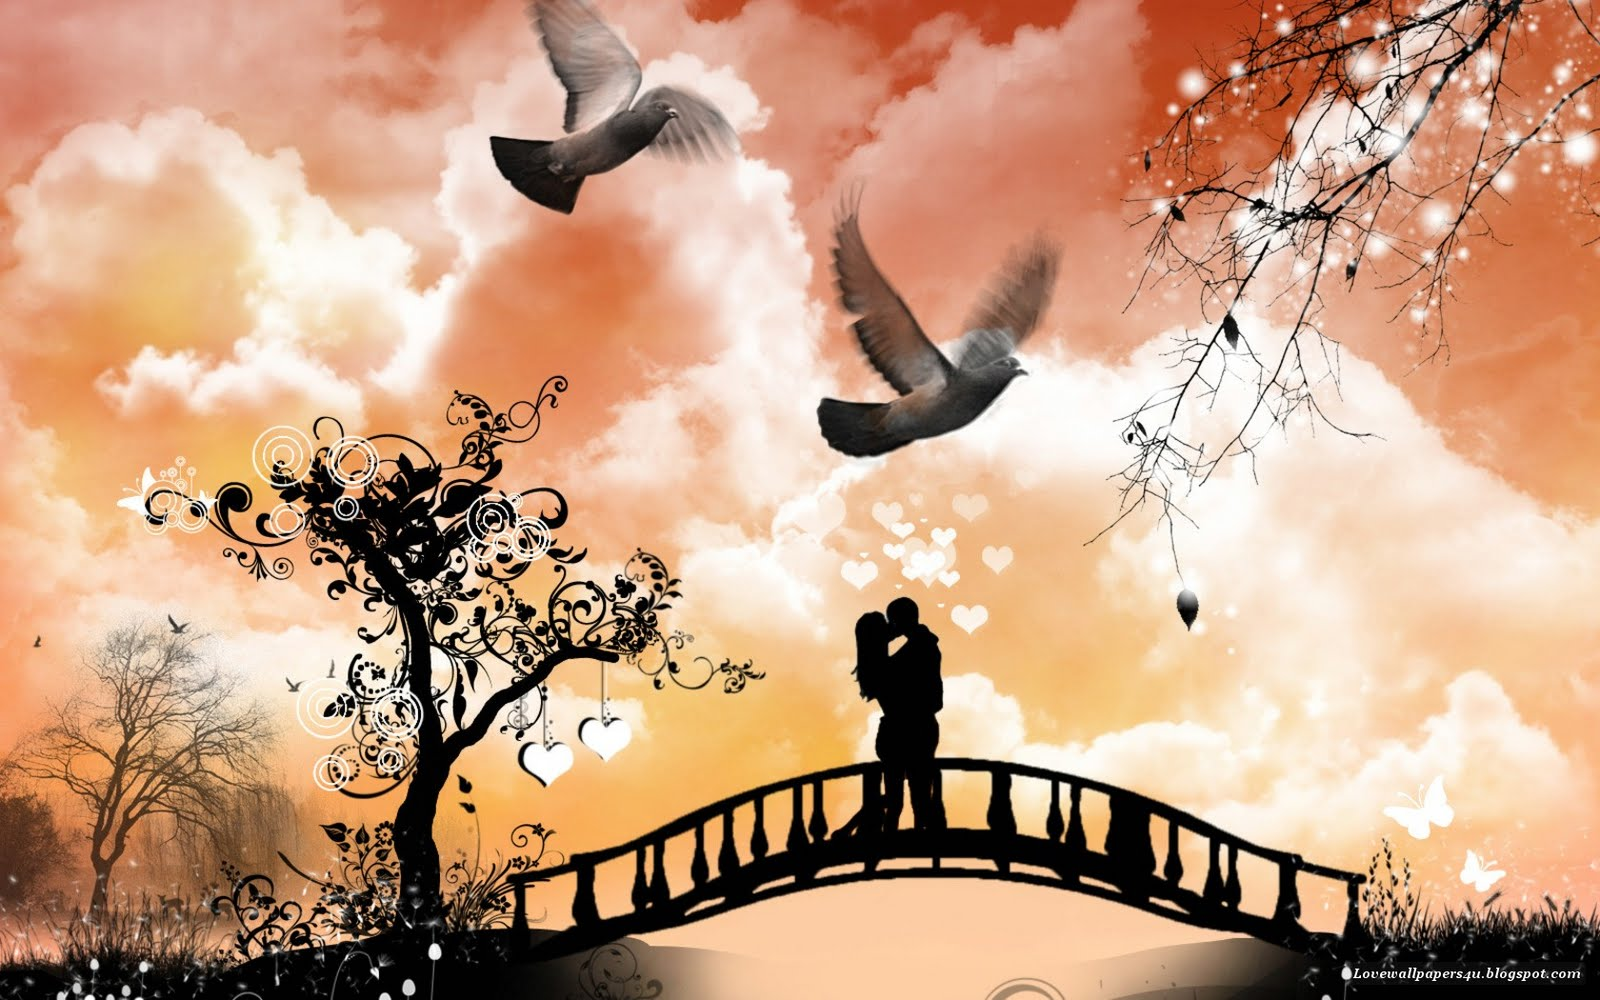 Wallpaper Images Of Love : iWallpapers: LOVE WALLPAPERS HD